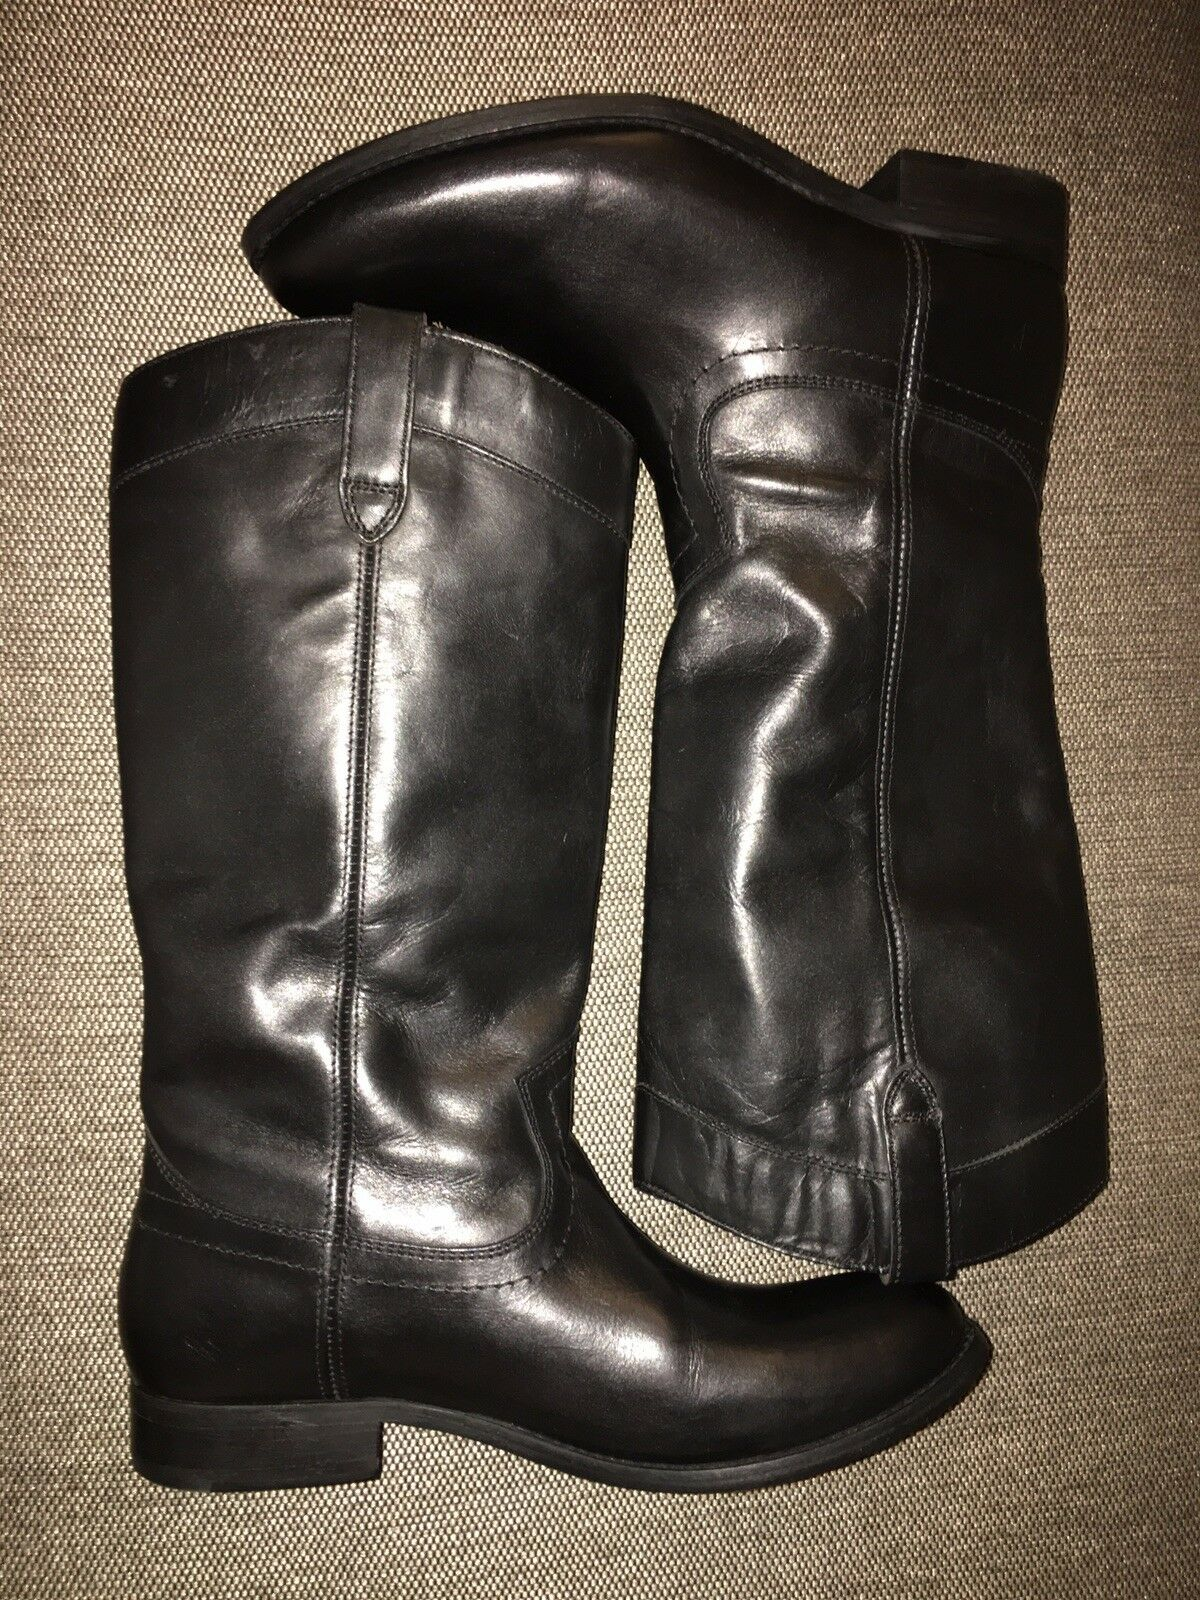 Frye Melissa Pull On On On Black Leather Riding Boots Women's 7 B Style   46979 45a41e